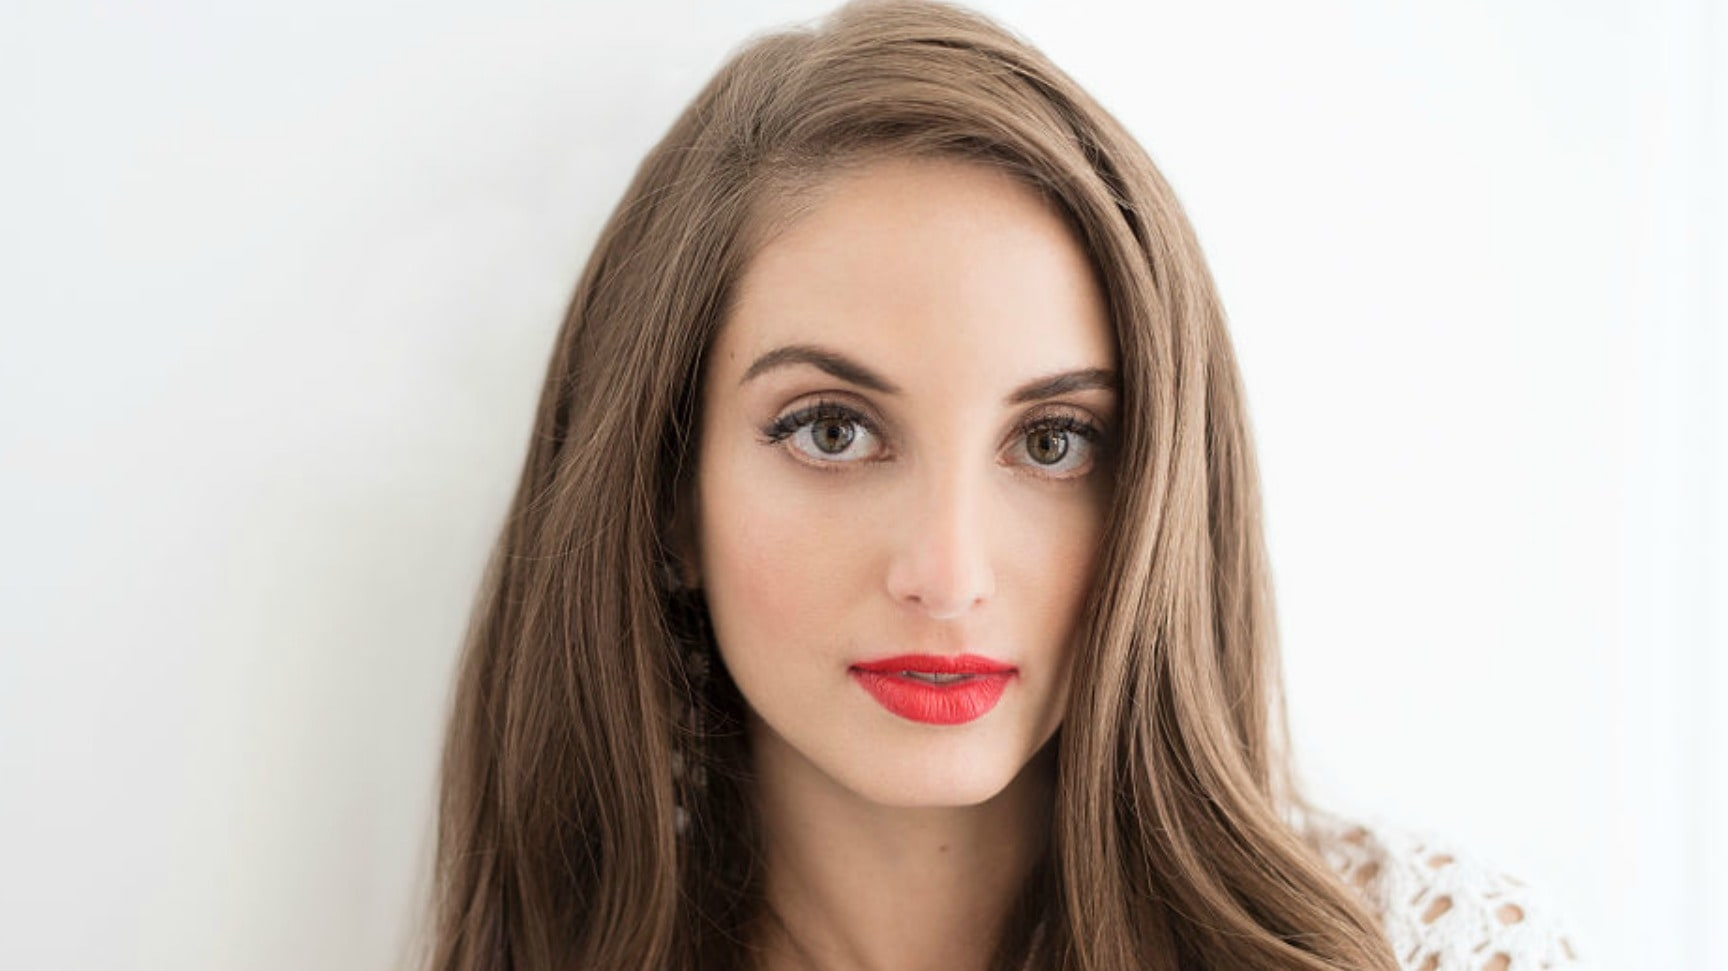 Twitter Photos Alexa Ray Joel naked photo 2017